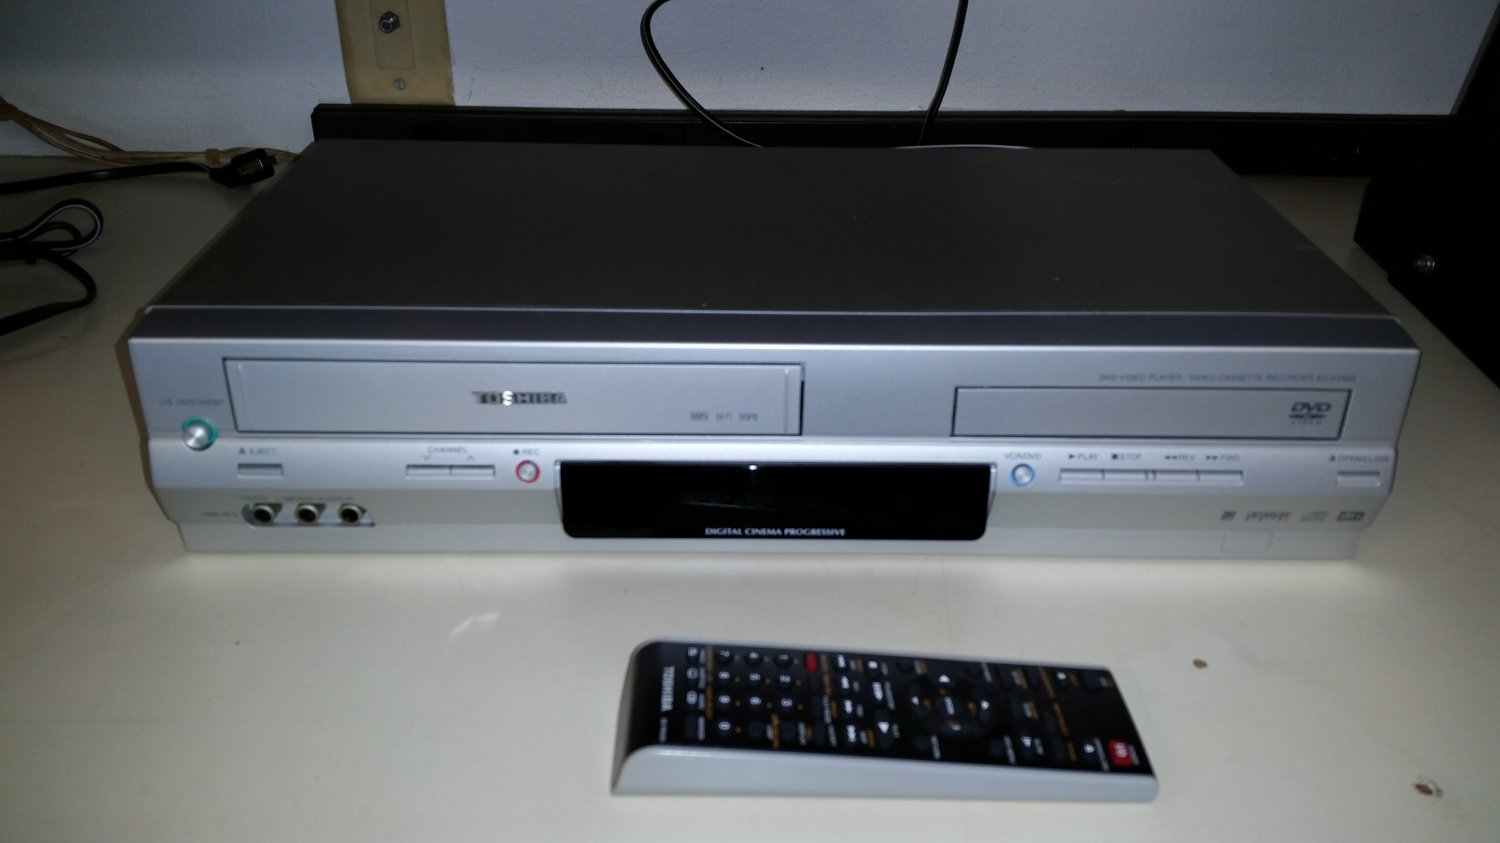 Toshiba sd kv550 su dvd player with dvdvcr tuner with remote toshiba sd kv550 su dvd player with dvdvcr tuner with remote manual sciox Choice Image